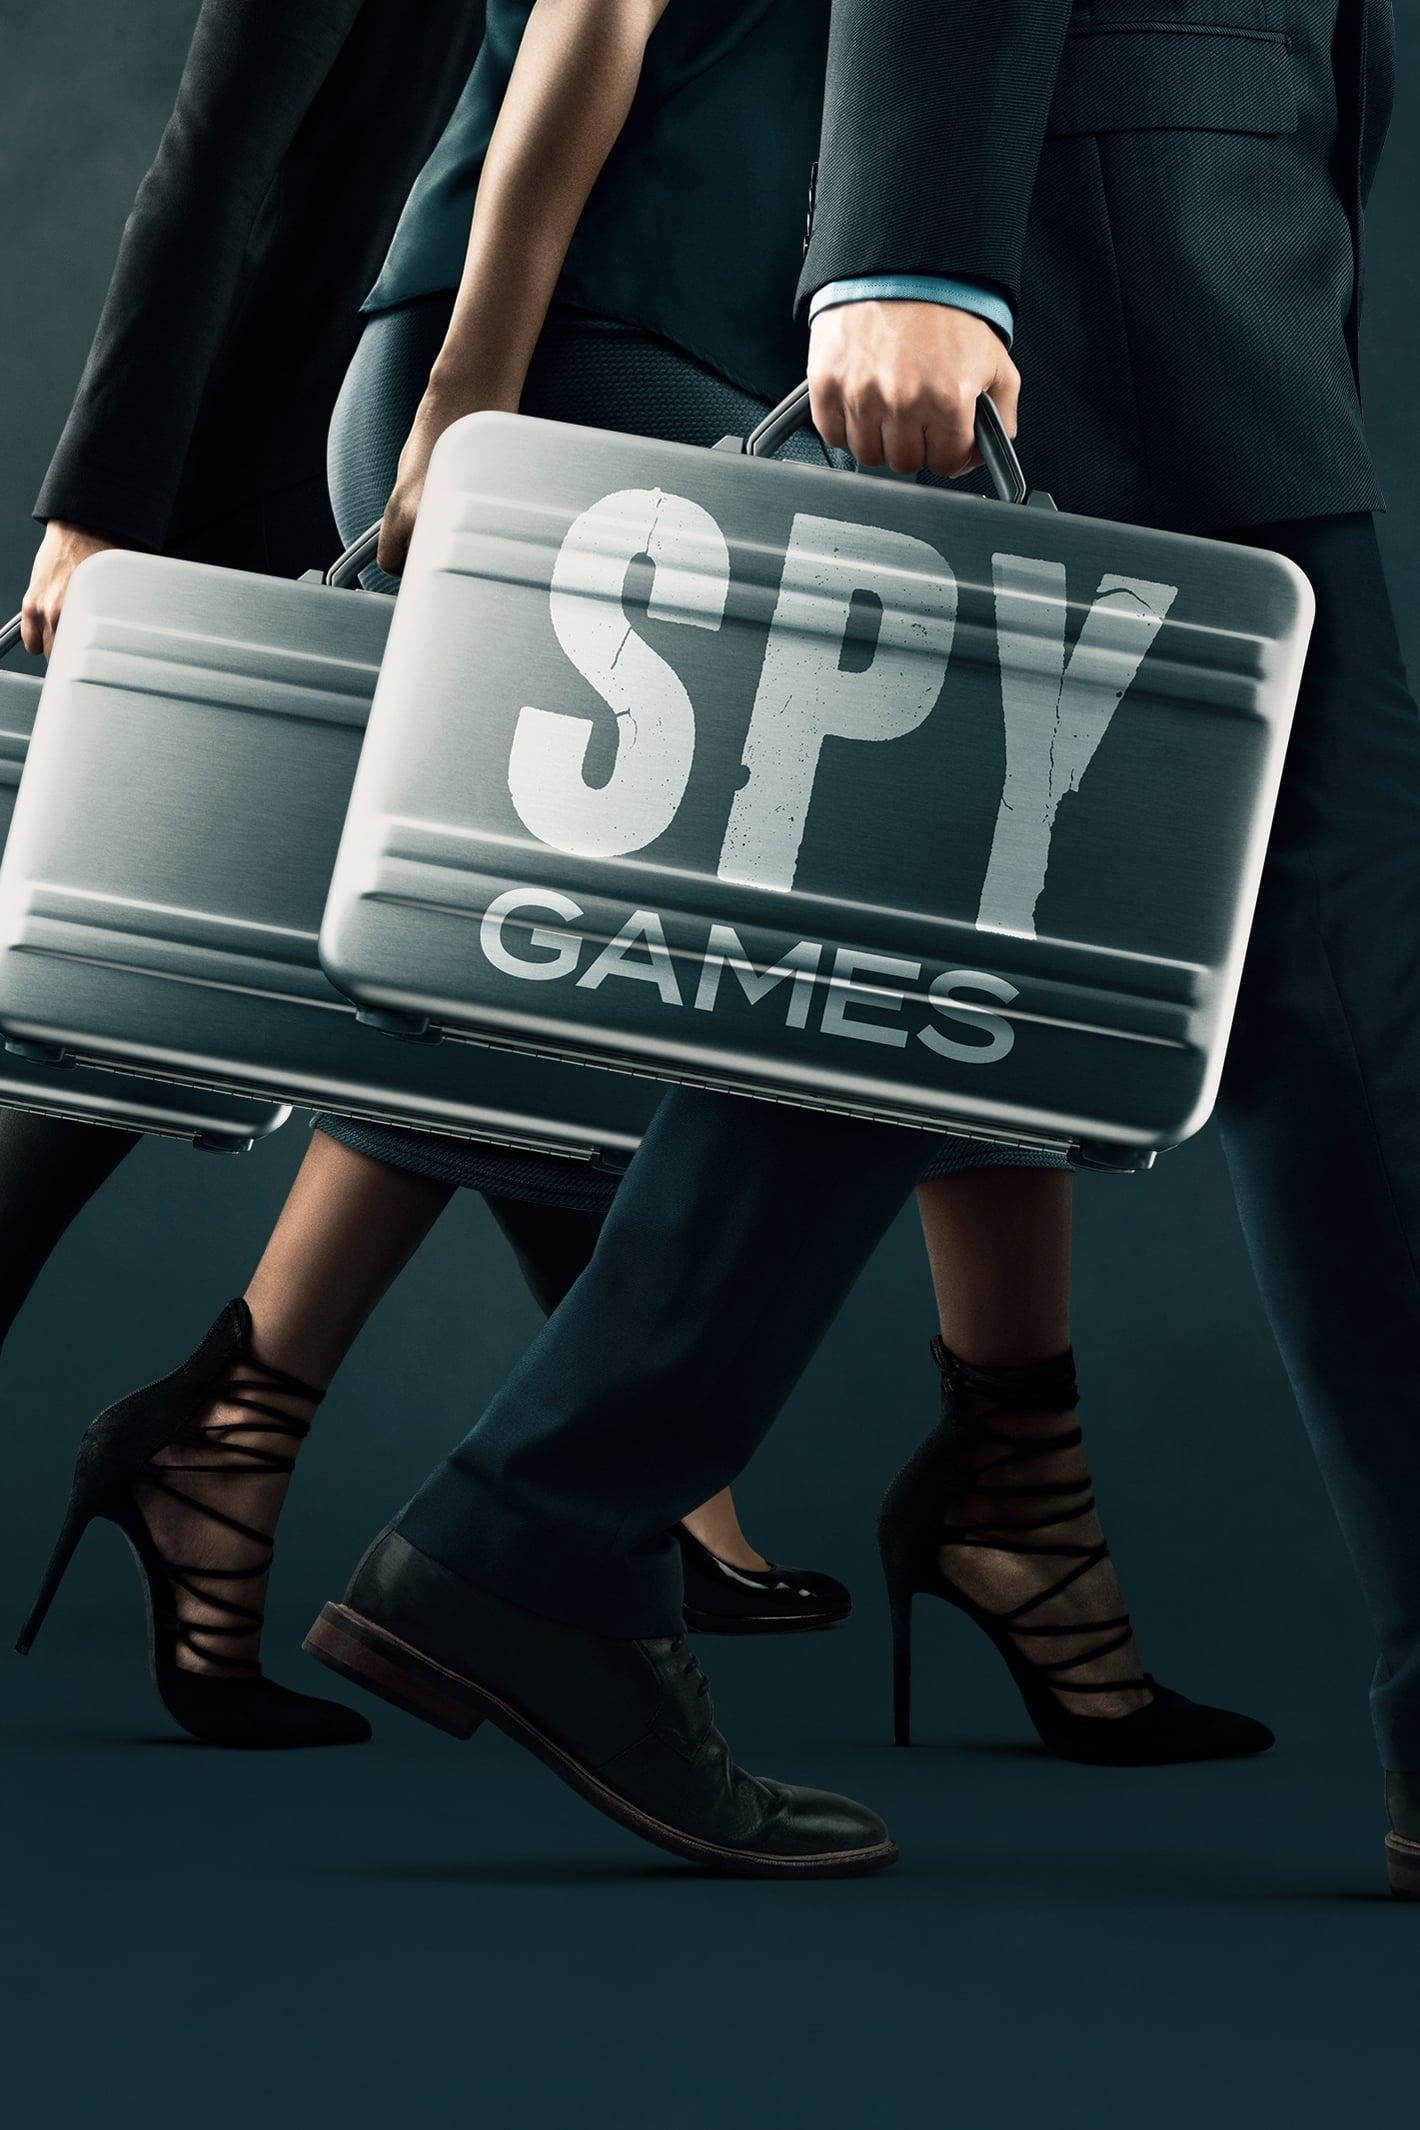 Spy Games TV Shows About Spy